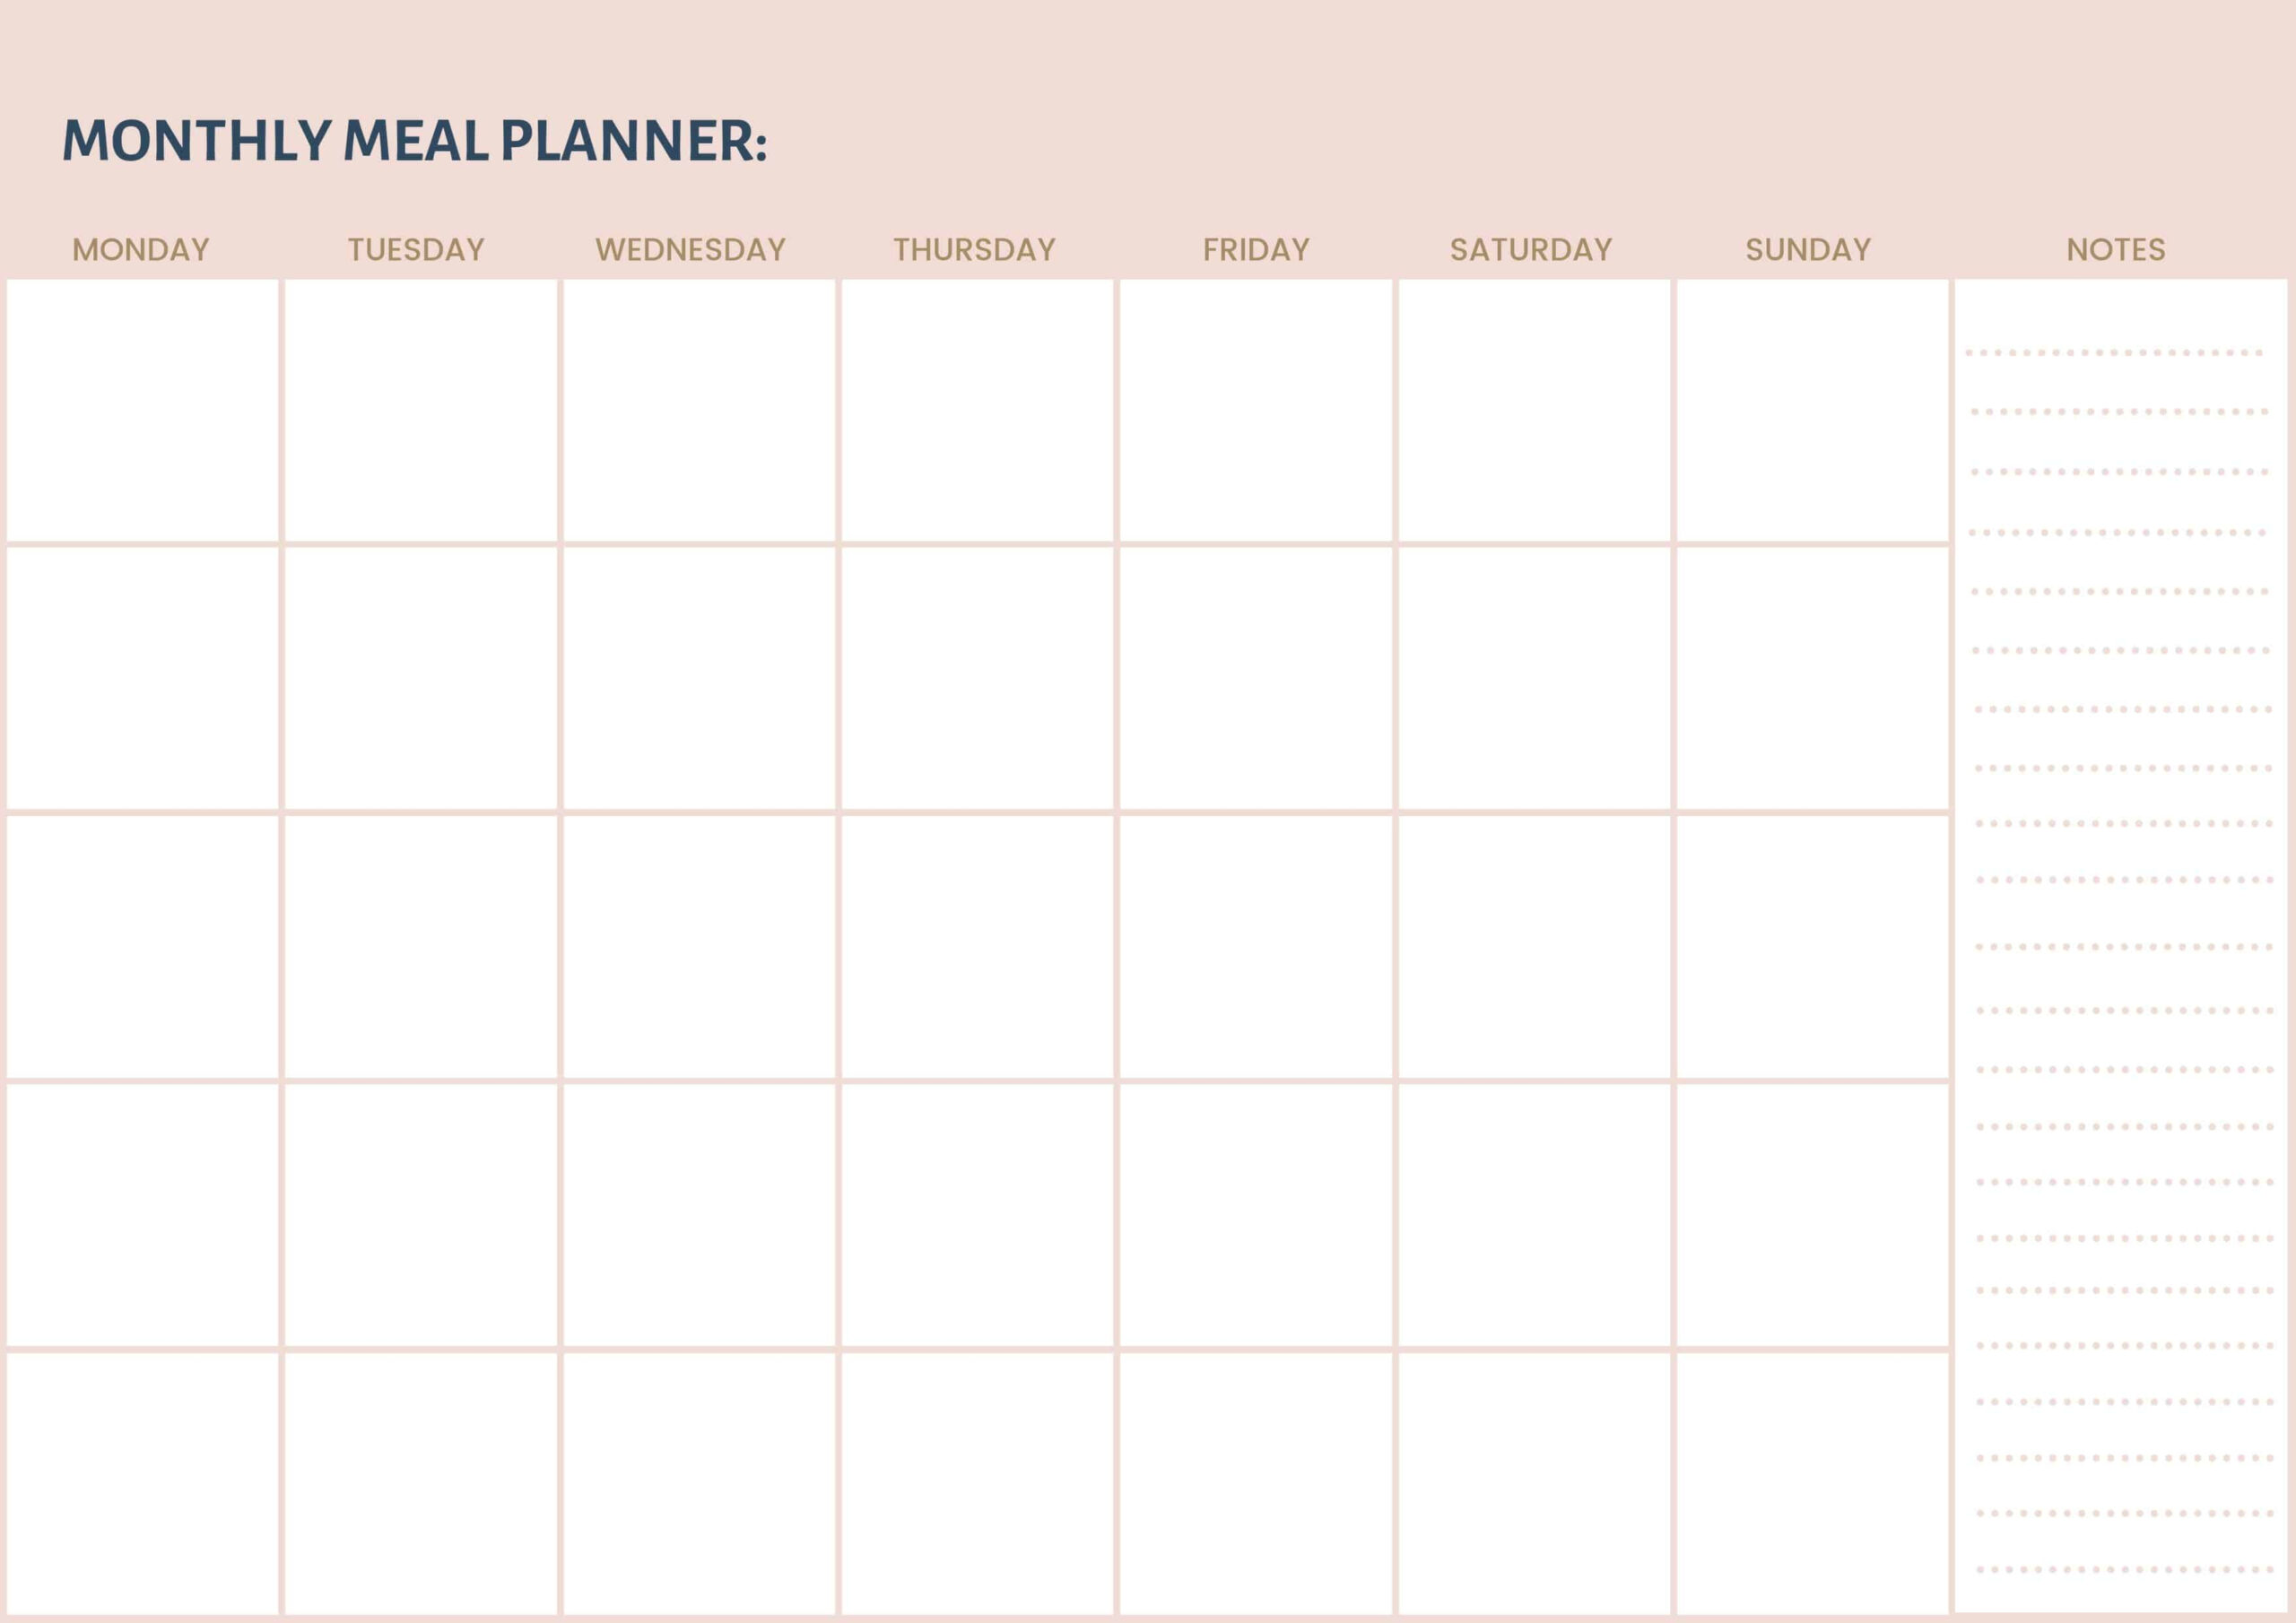 Free Monthly Meal Planner Printable   Thermomix Diva within Free Printable Monthly Menu Calendar